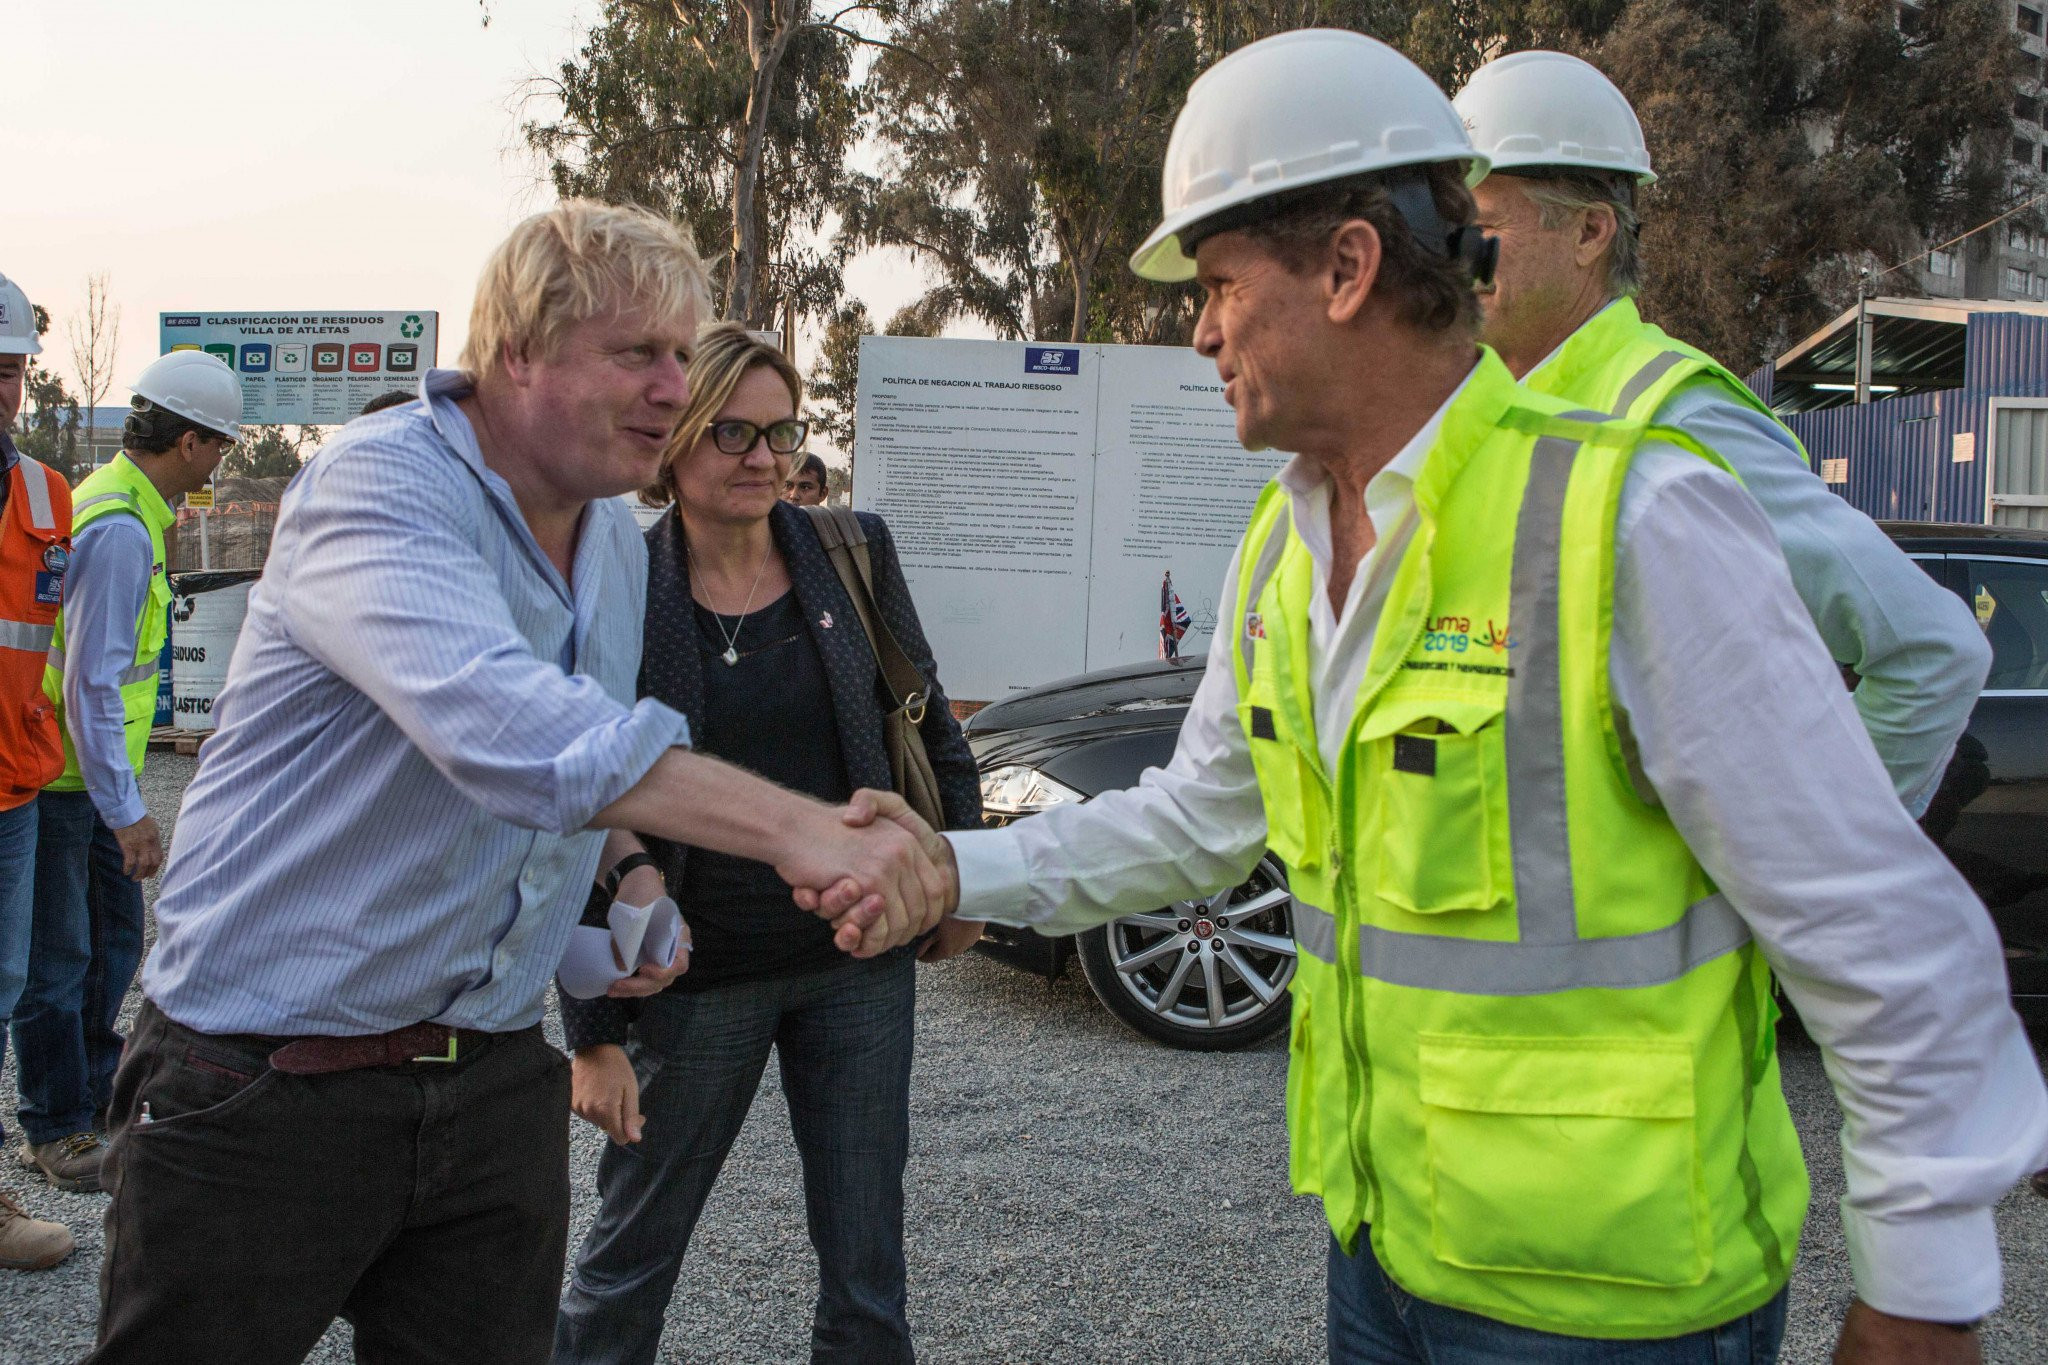 Boris Johnson, then British Foreign Secretary, visited Lima as part of the Government-to-Government Agreement ©Lima 2019